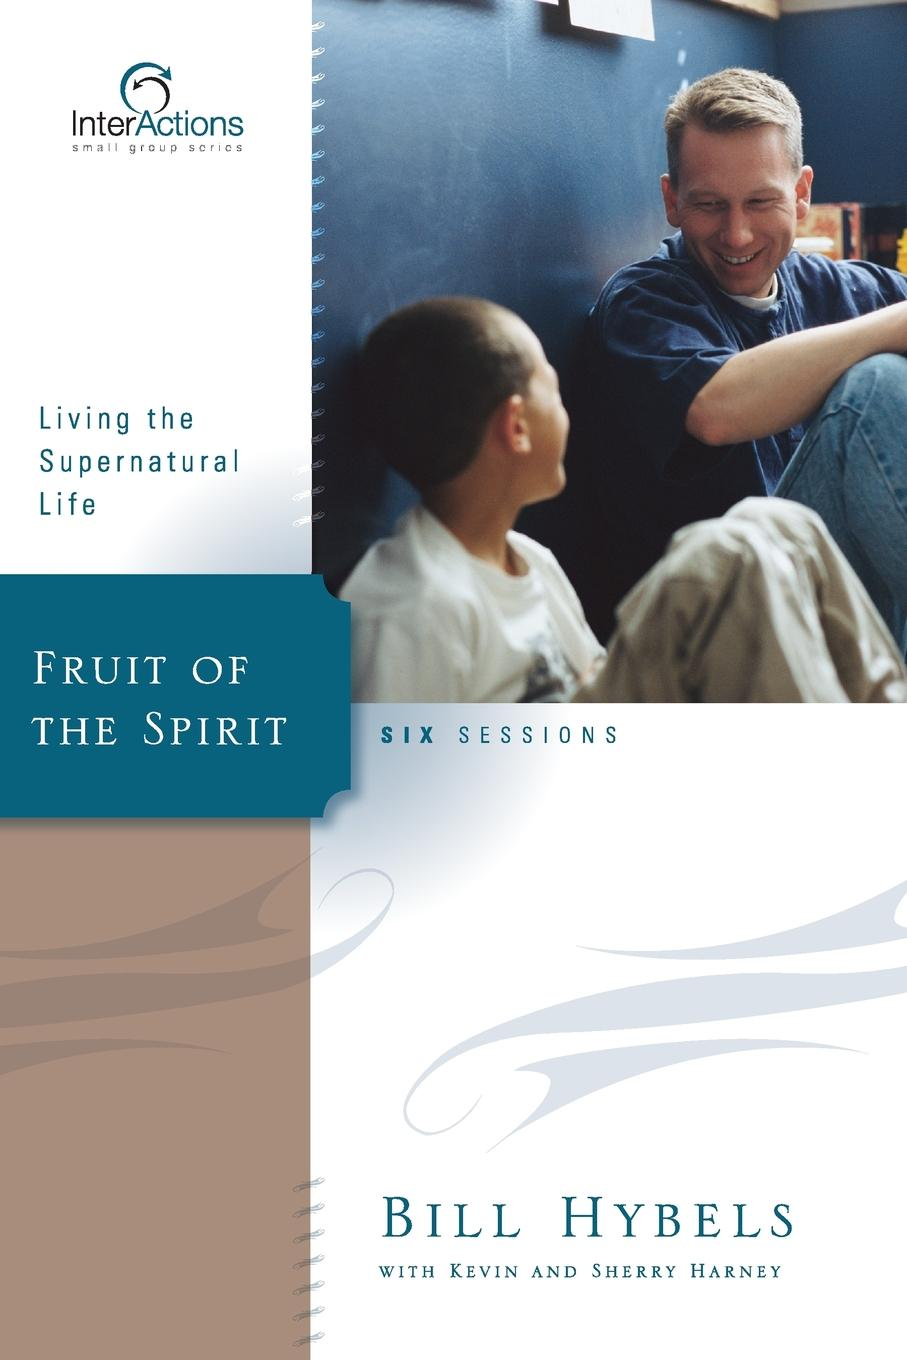 Bill Hybels Fruit of the Spirit. Living the Supernatural Life bill hybels sermon on the mount 1 connect with god